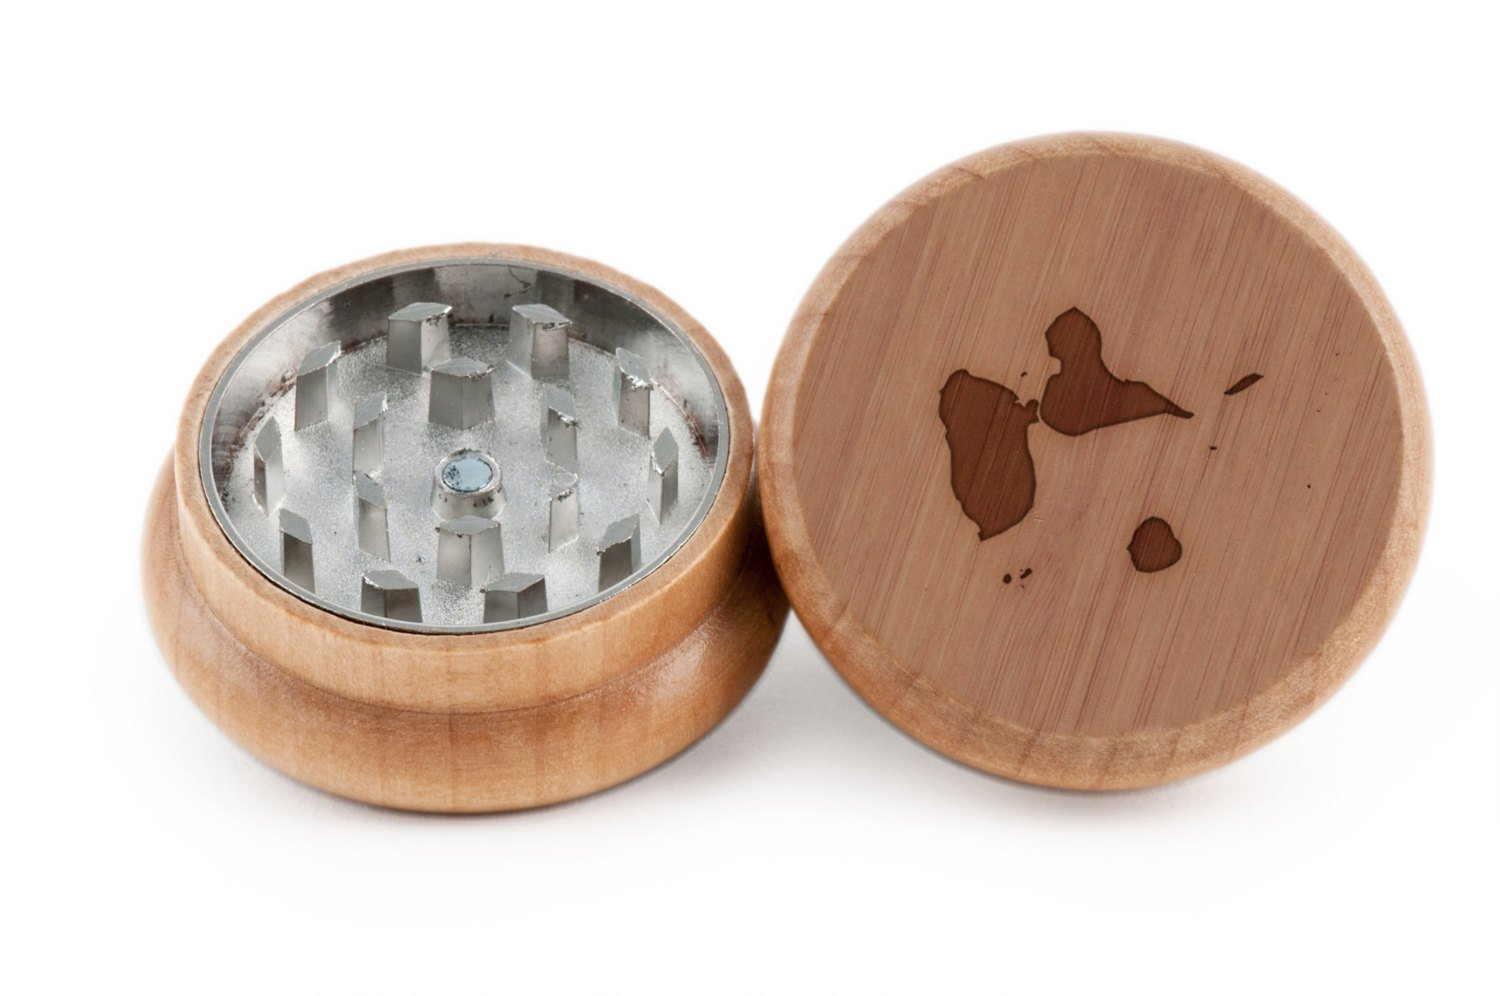 Guadeloupe Herb and Spice Grinder - 2 Piece Wood Grinder with Laser Etched Designs - Made with Oak (2 Inches) GrindCandy